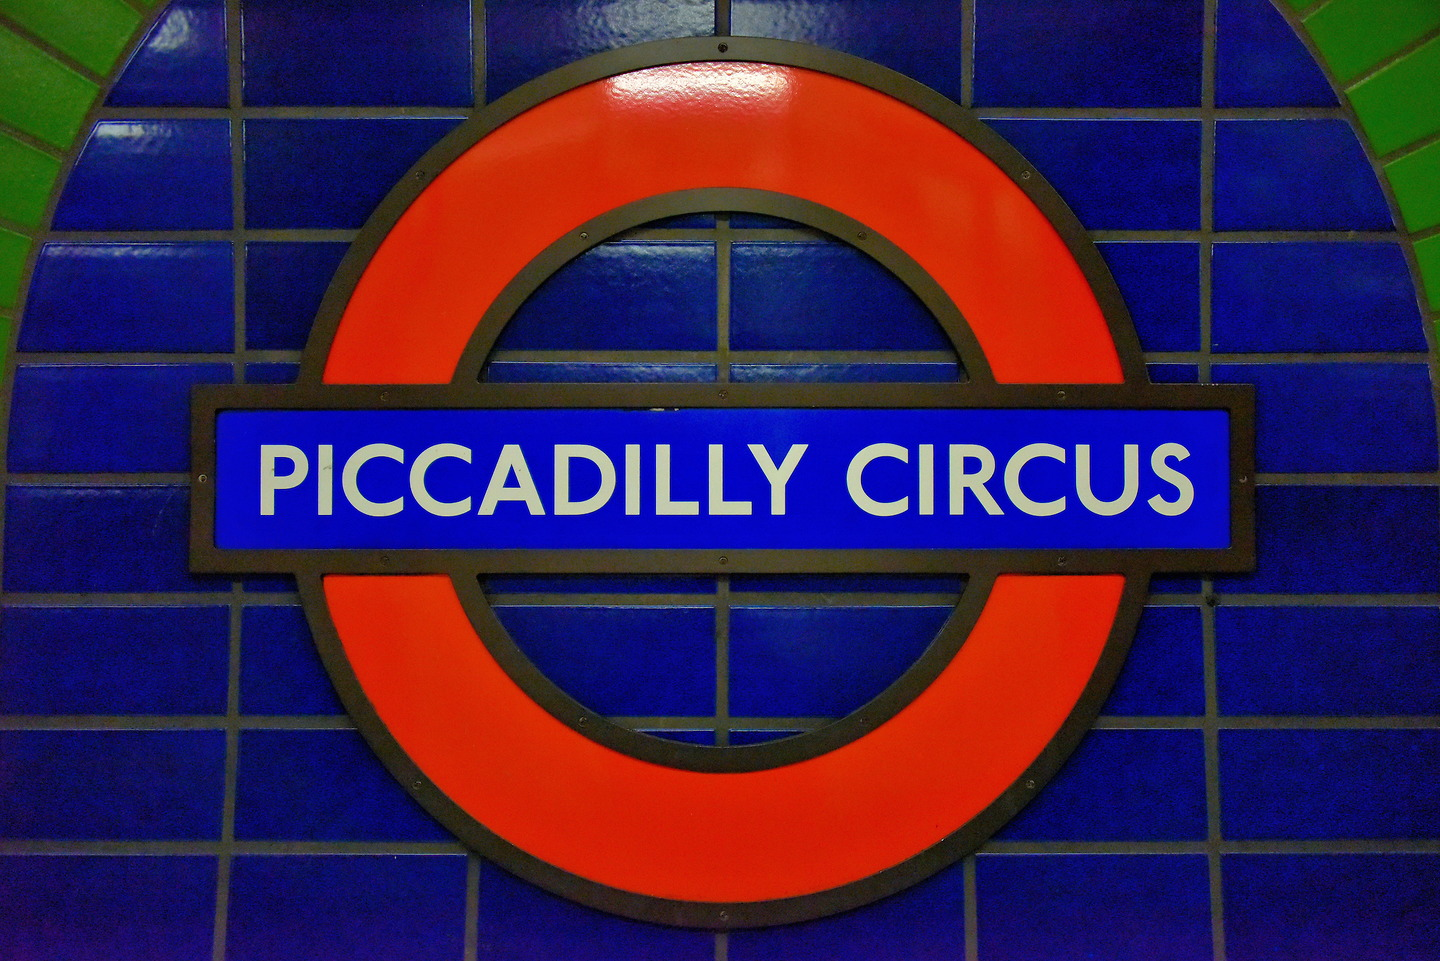 London Undergrounds Piccadilly Circus Station In London England